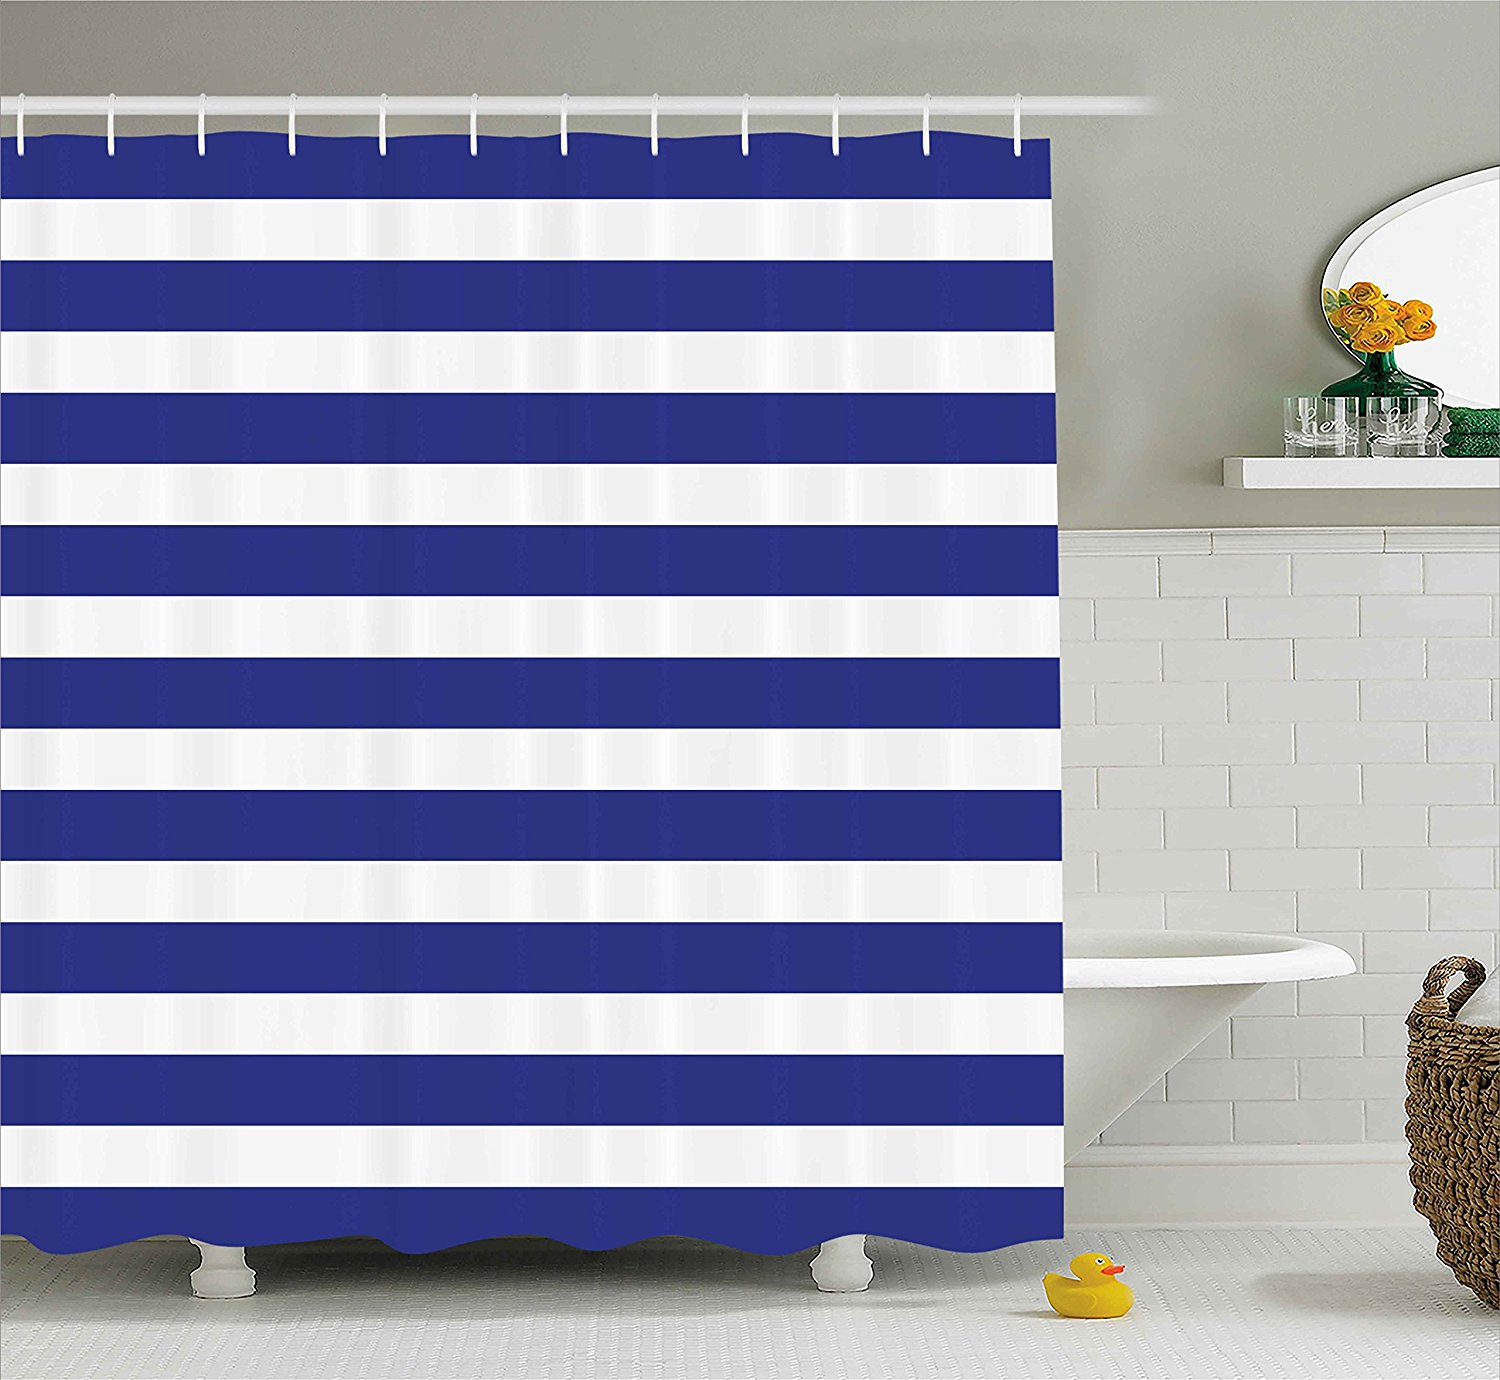 Us 12 8 44 Off Striped Shower Curtain Nautical Marine Style Navy Blue And White Sailor Theme Geometric Pattern Art Print Fabric Bathroom Set In